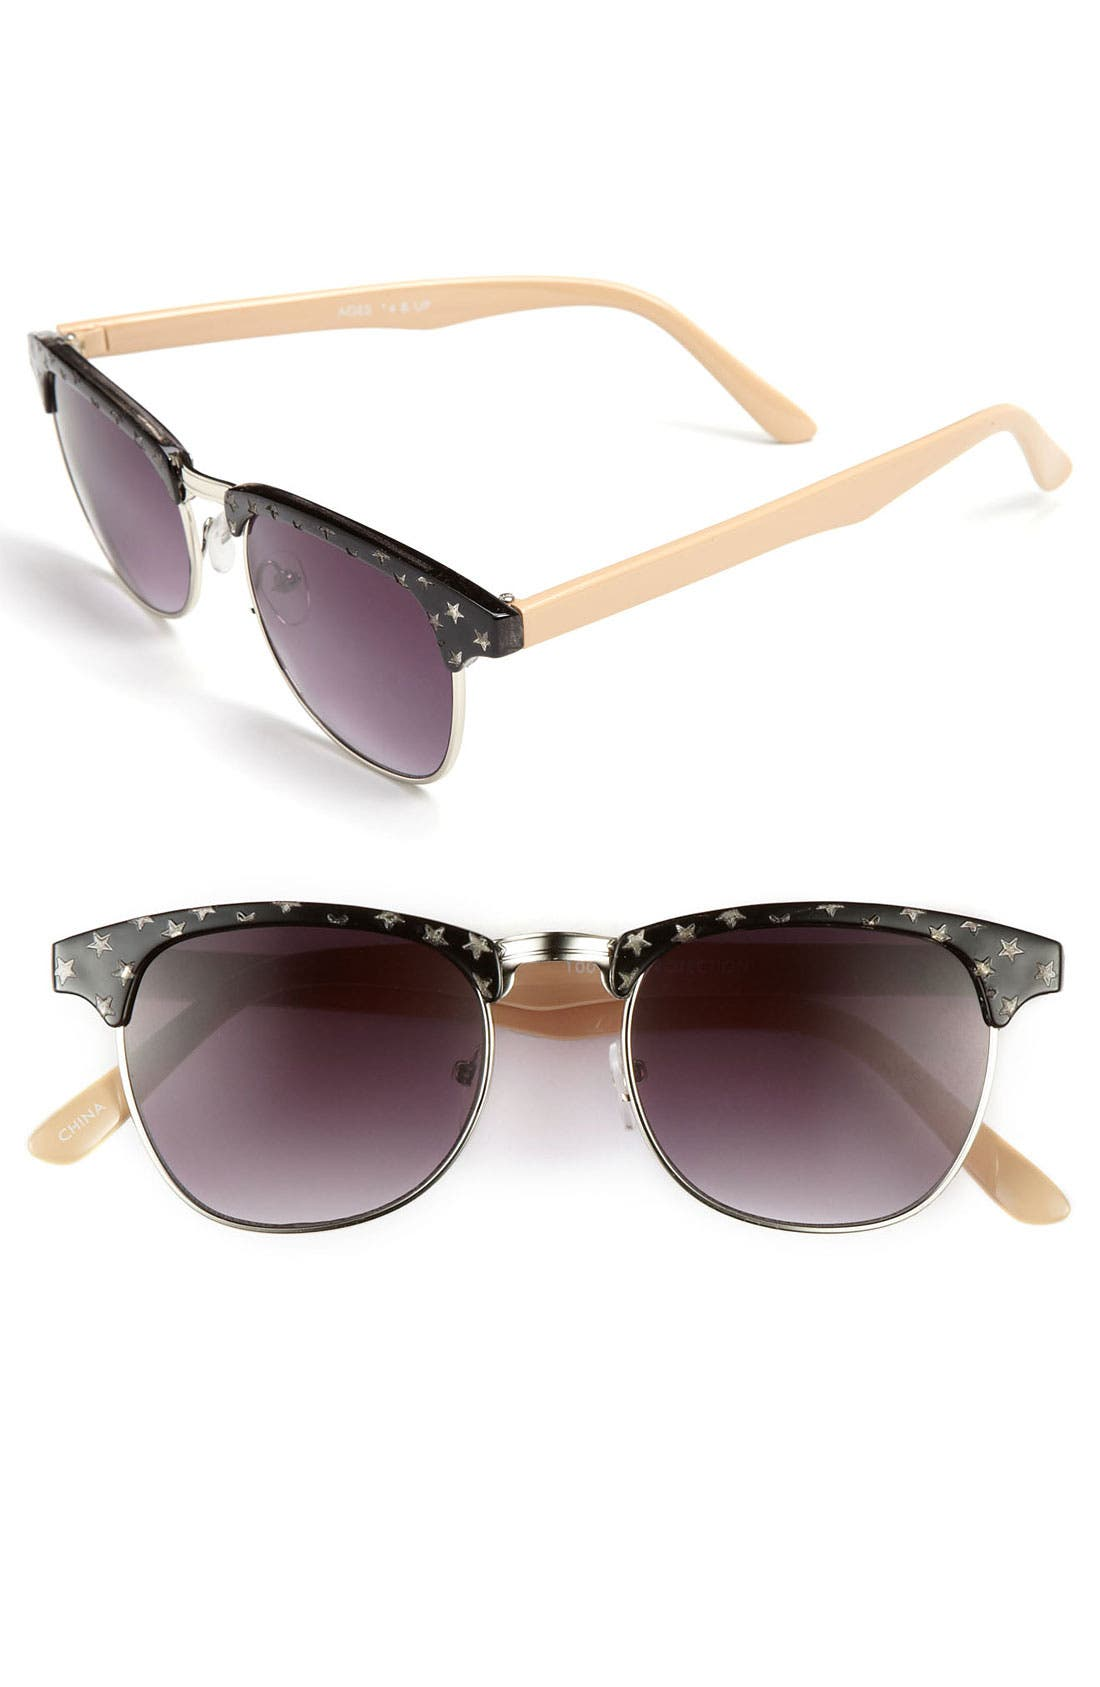 Main Image - FE NY 'Star' Sunglasses